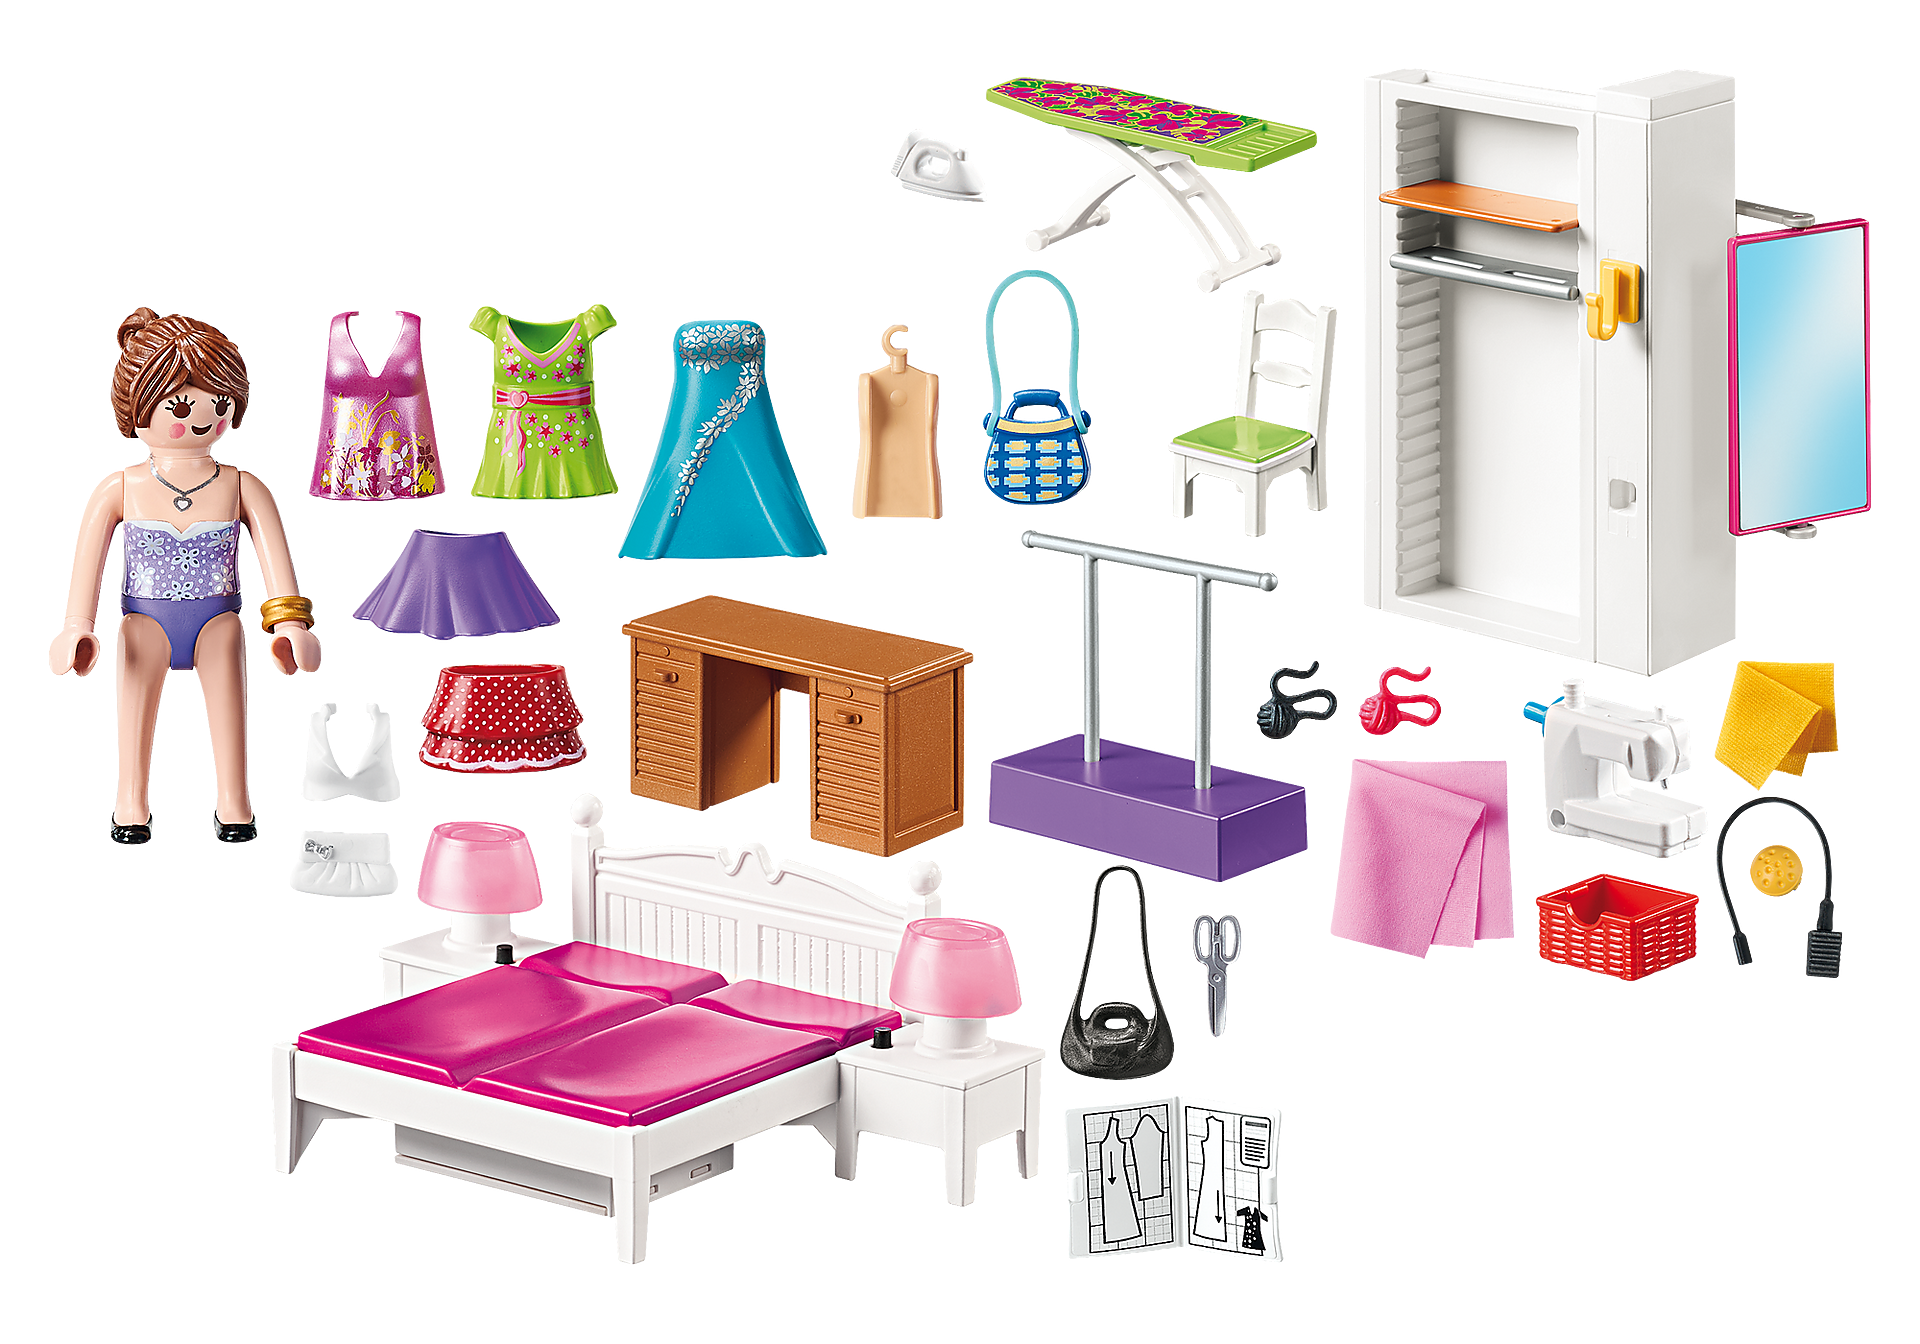 http://media.playmobil.com/i/playmobil/70208_product_box_back/Slaapkamer met mode ontwerphoek